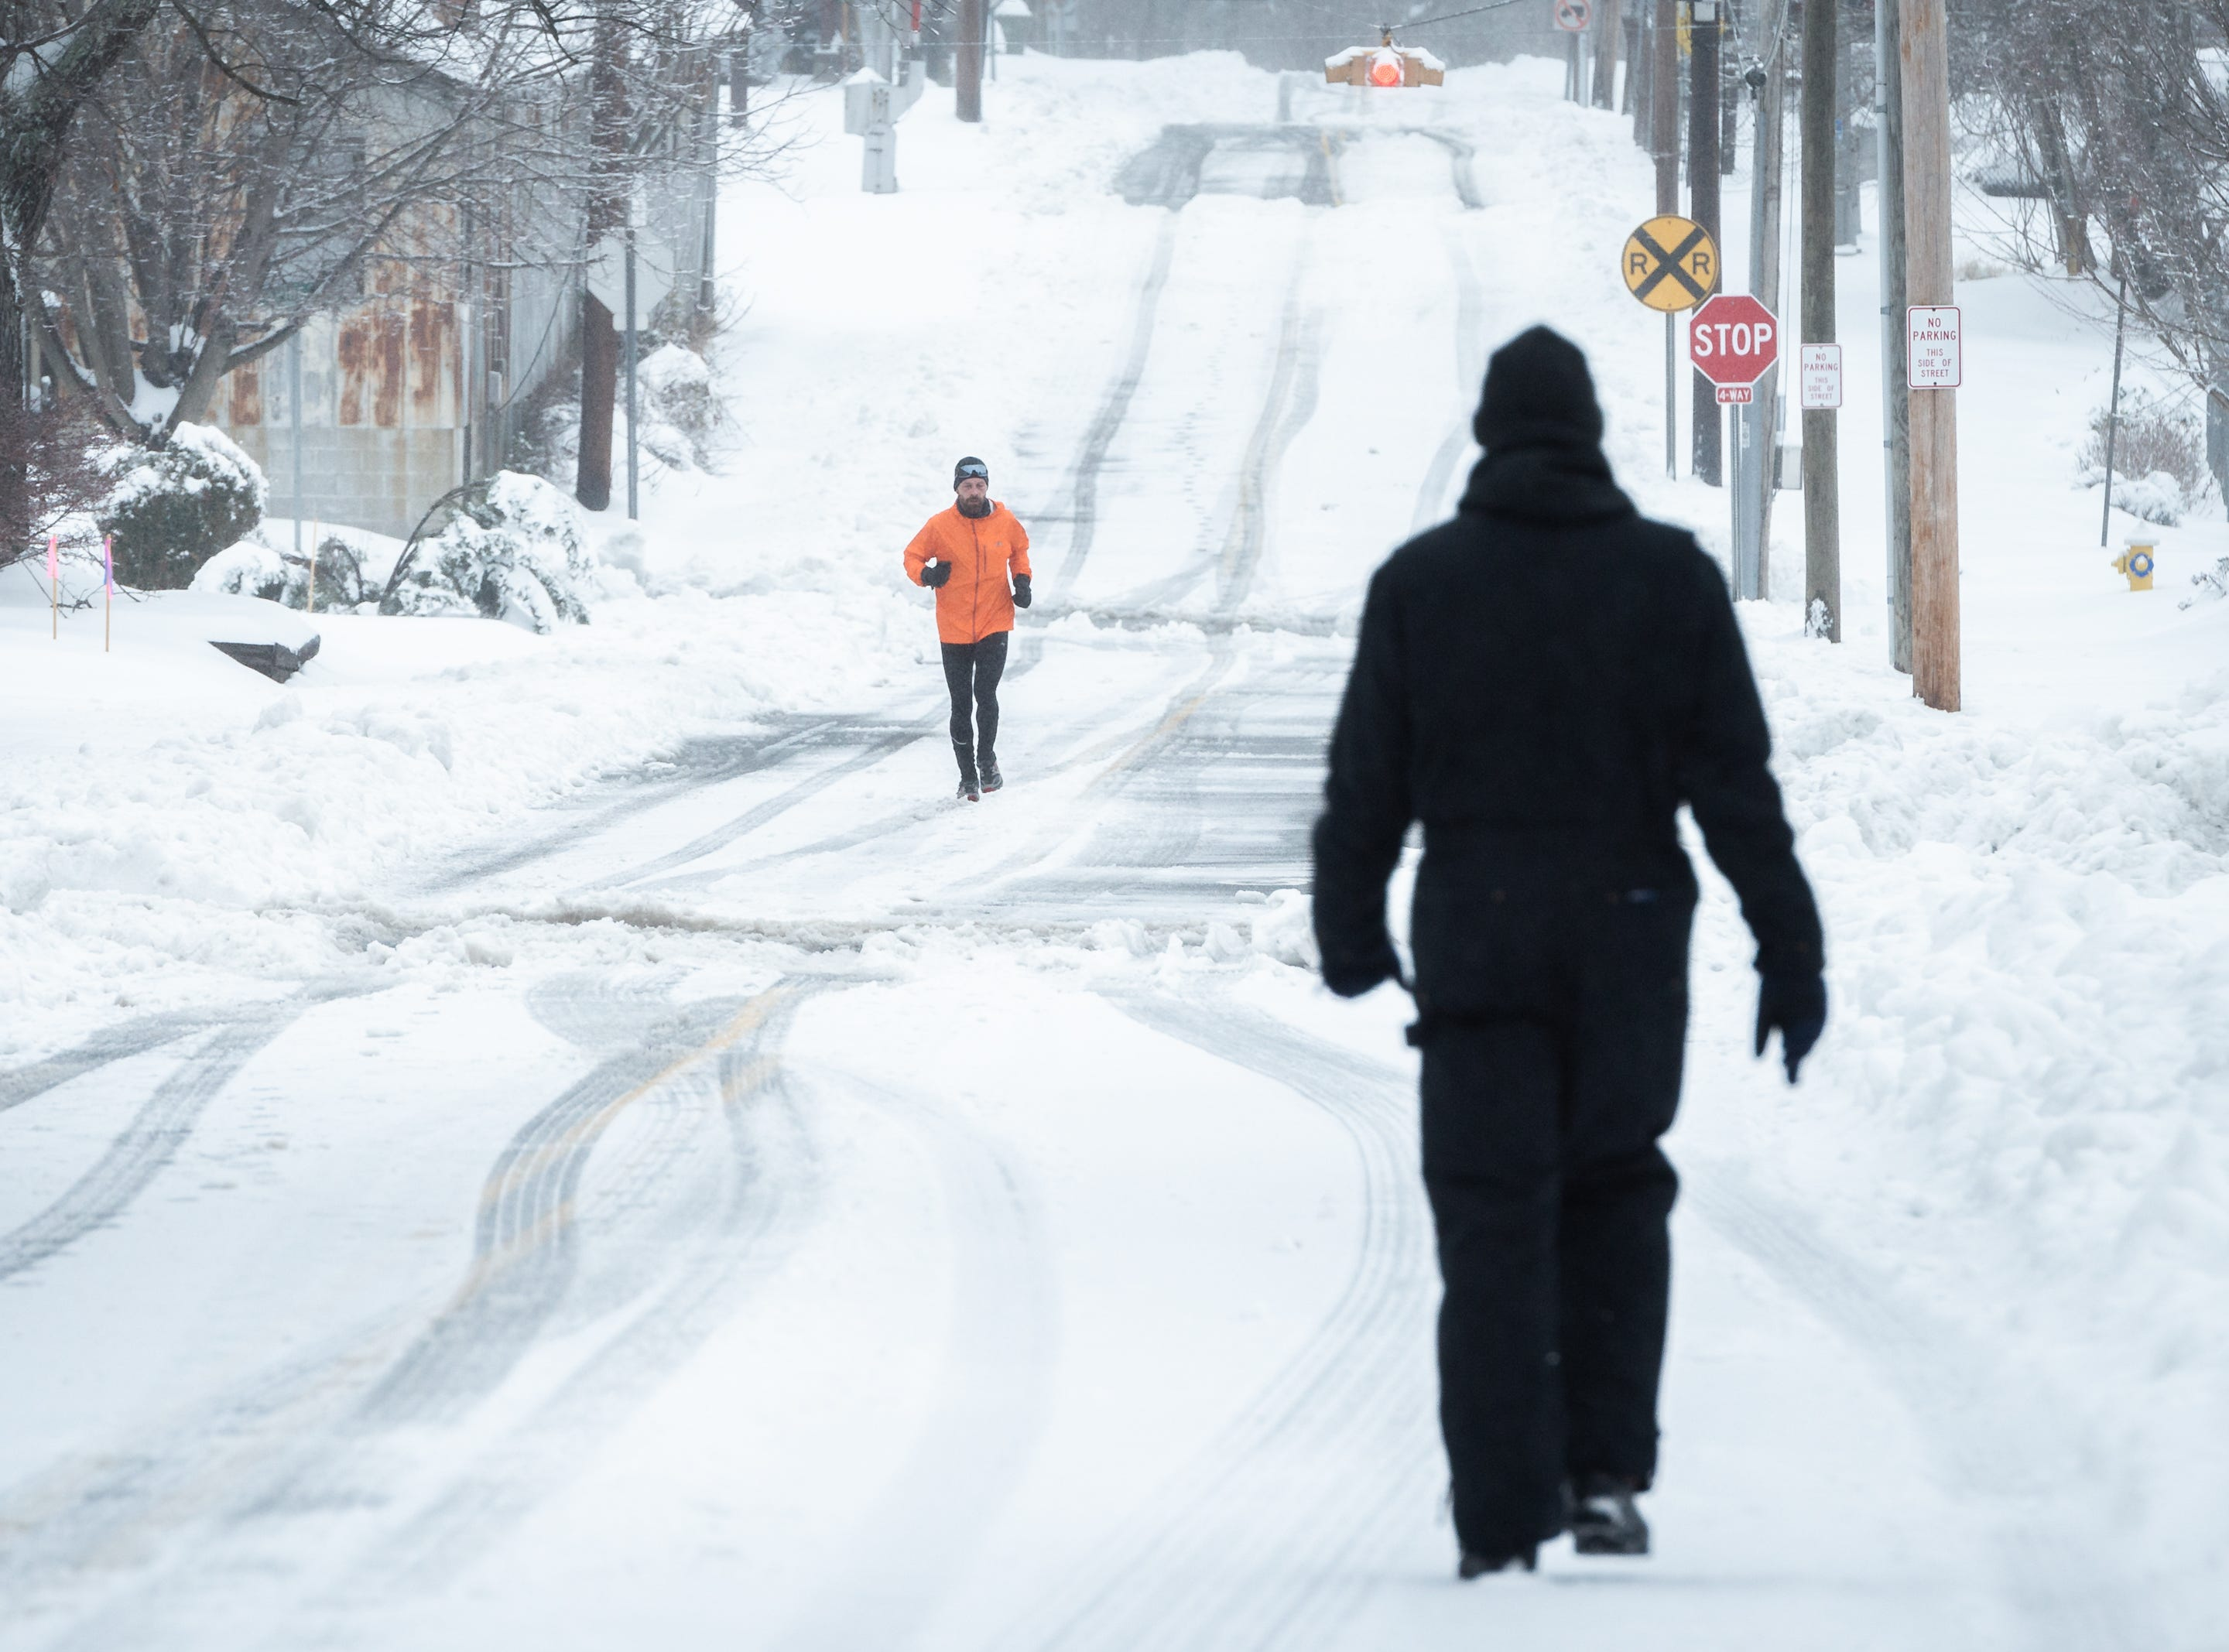 A runner and a pedestrian in downtown Hendersonville after a night of heavy snowfall, accumulating 10-11 inches Dec. 9, 2018. At 5 p.m there were nearly 9,600 power outages.